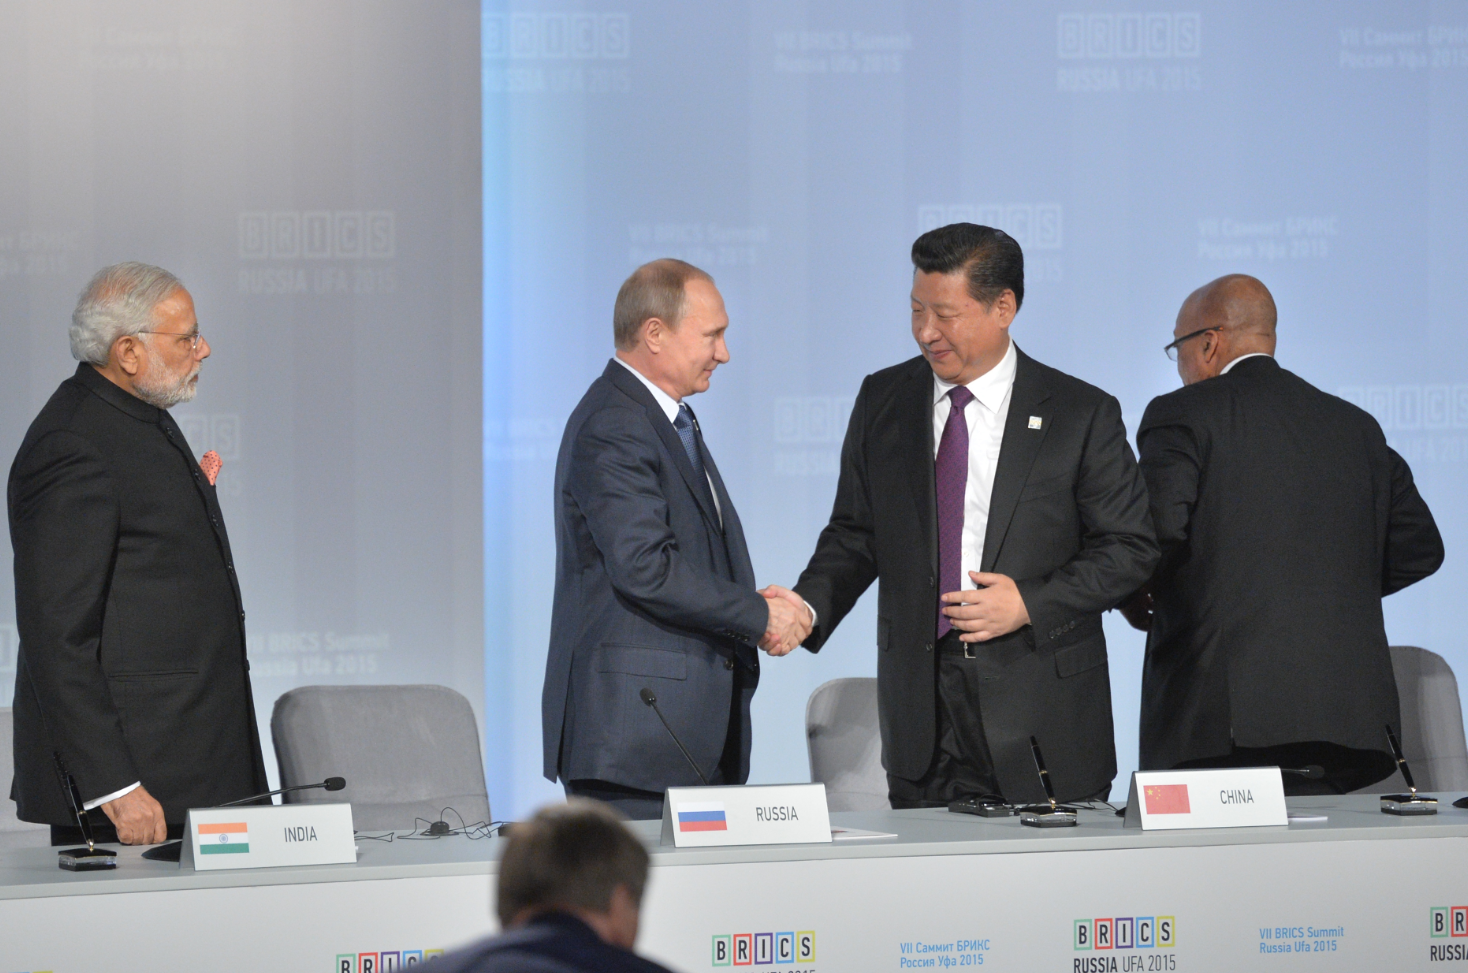 The BRICS format has not helped bring China and India closer.